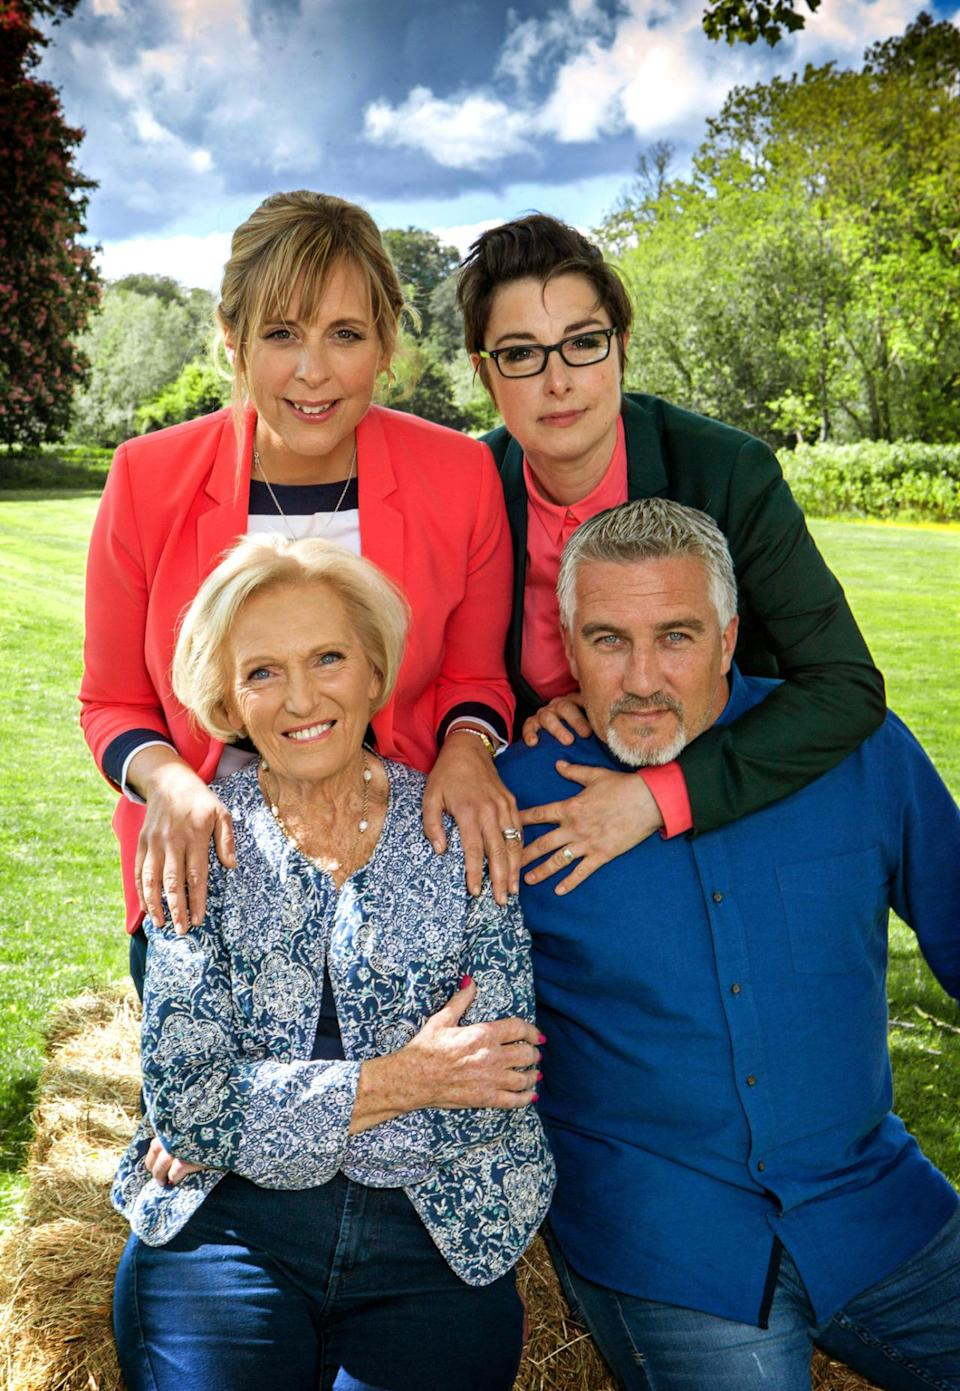 <p>Mary chose a statement jacket in a blue paisley print for the filming of a GBBO episode. </p><p><i>[Photo: BBC] </i></p>